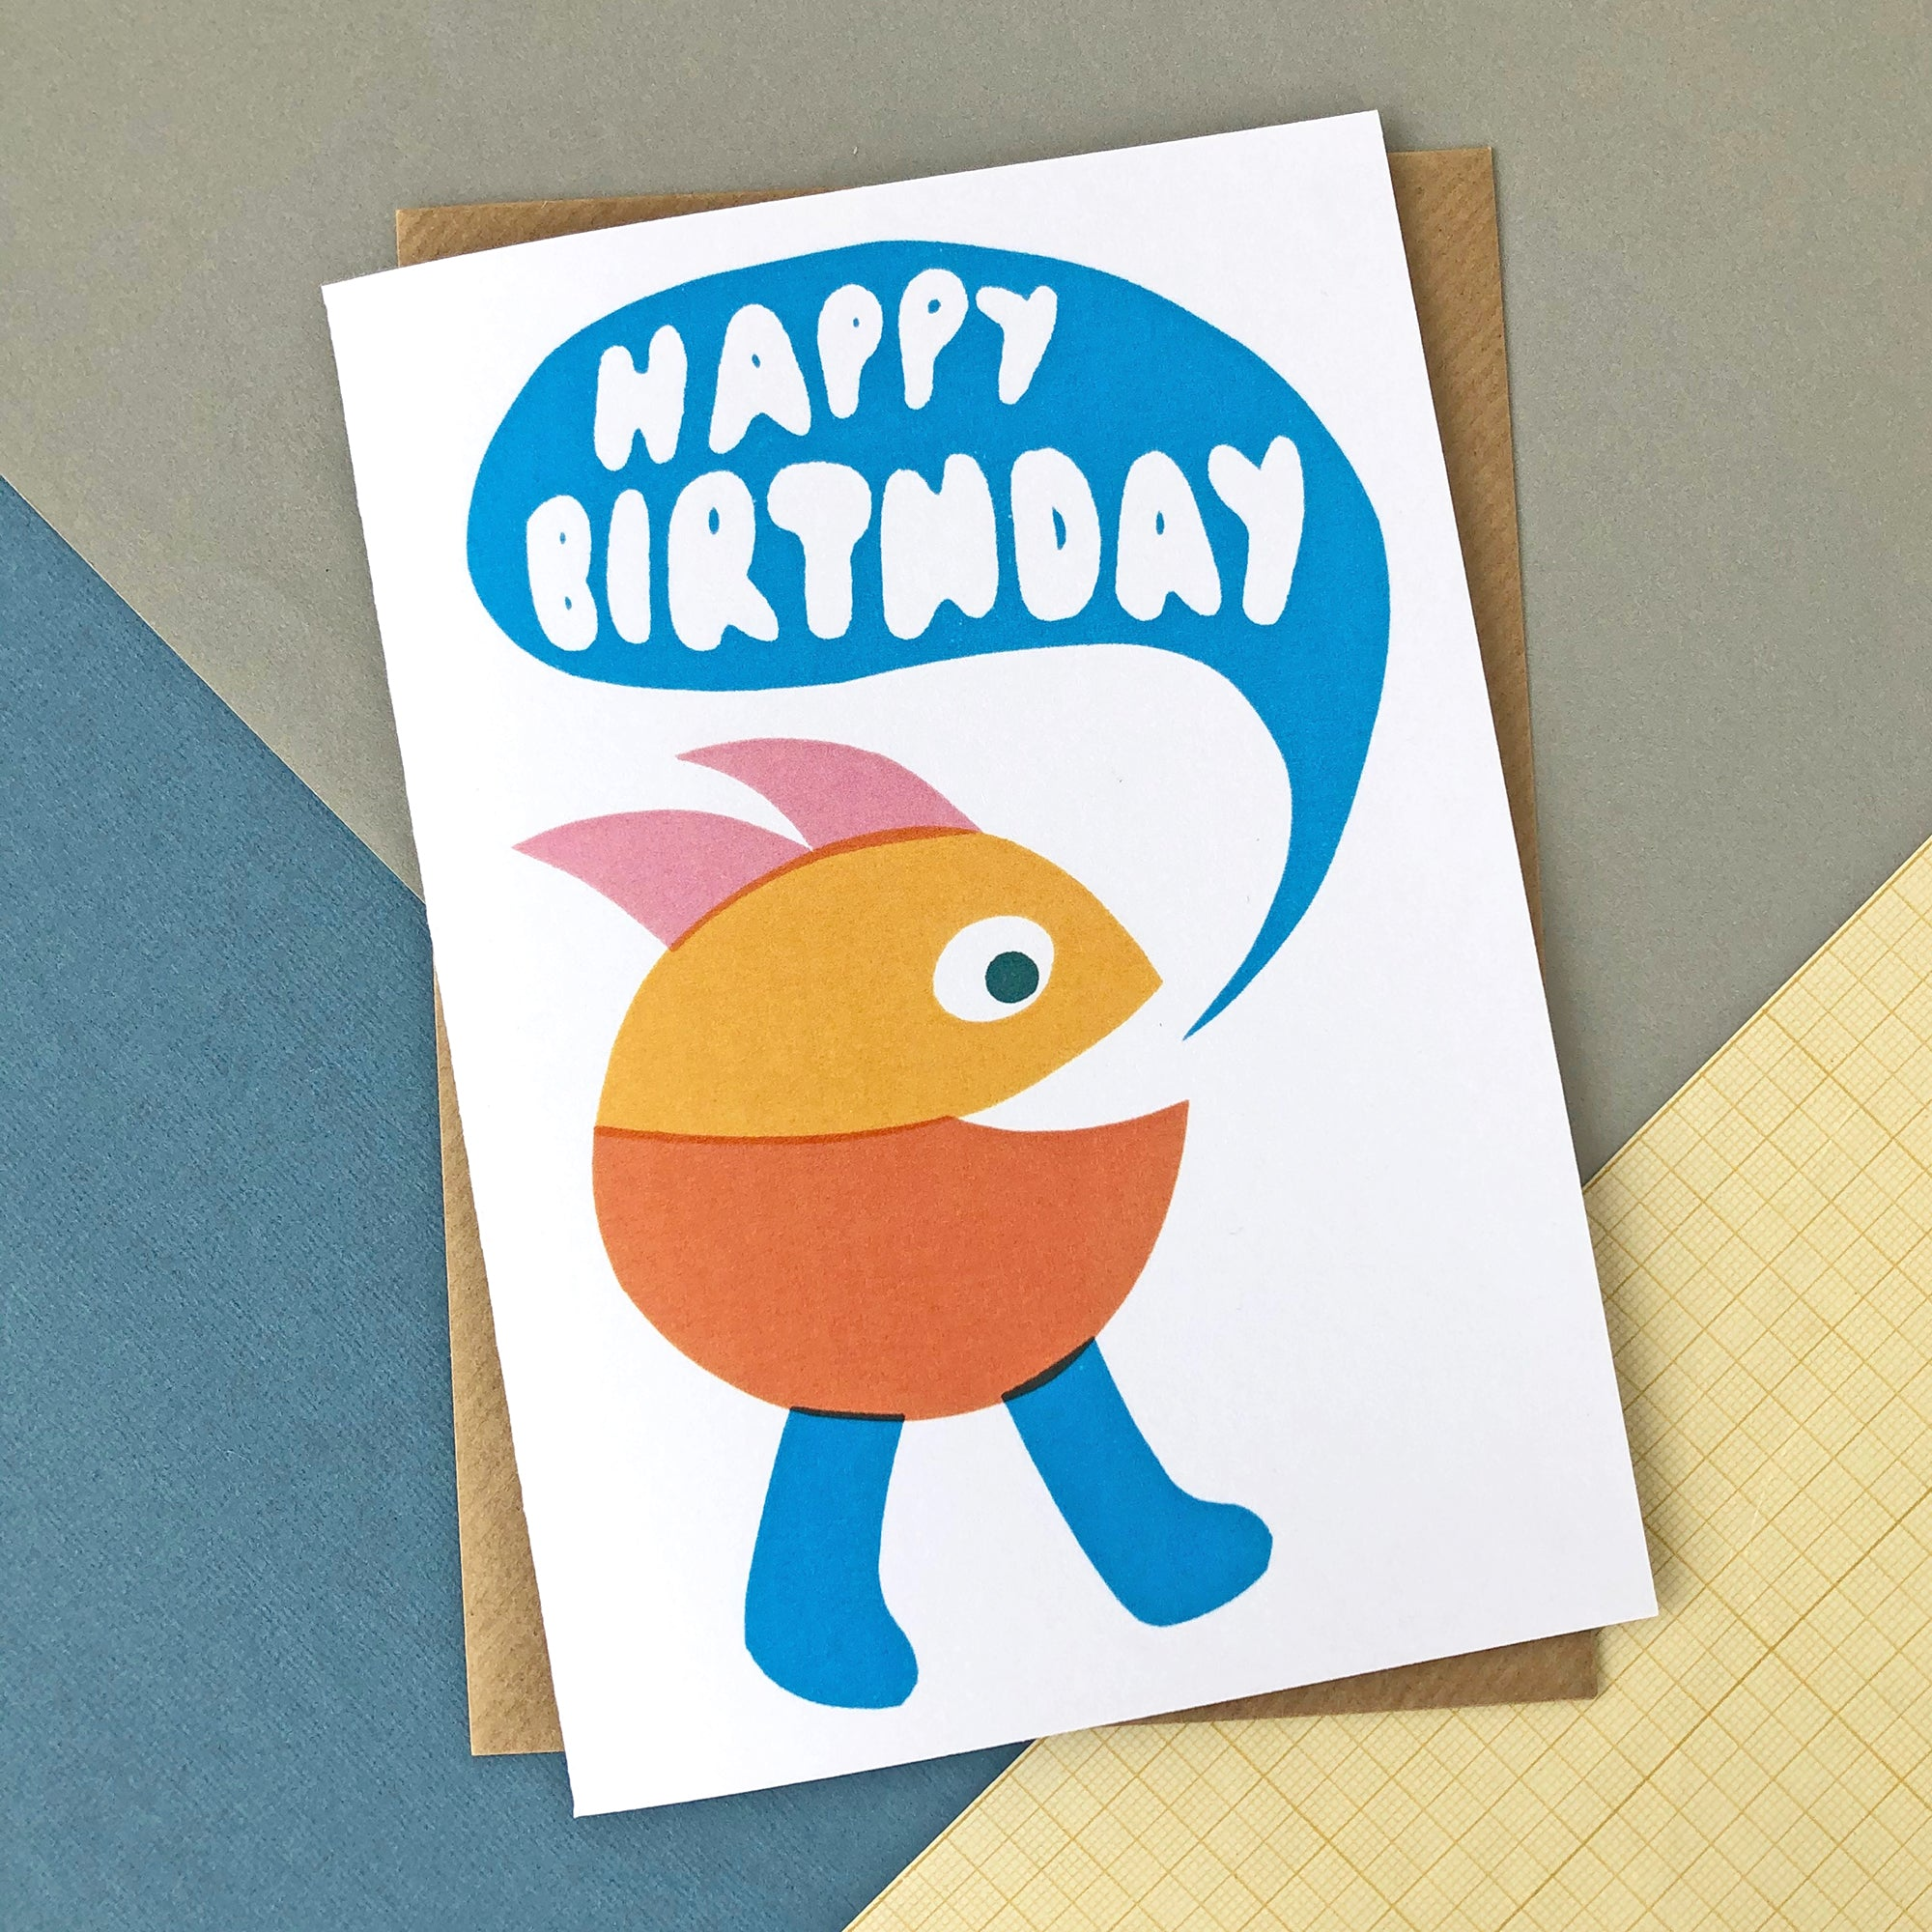 CARD041 HAPPY BIRTHDAY MUNCH MAN Card - Pack of 6 - Sukie Wholesale